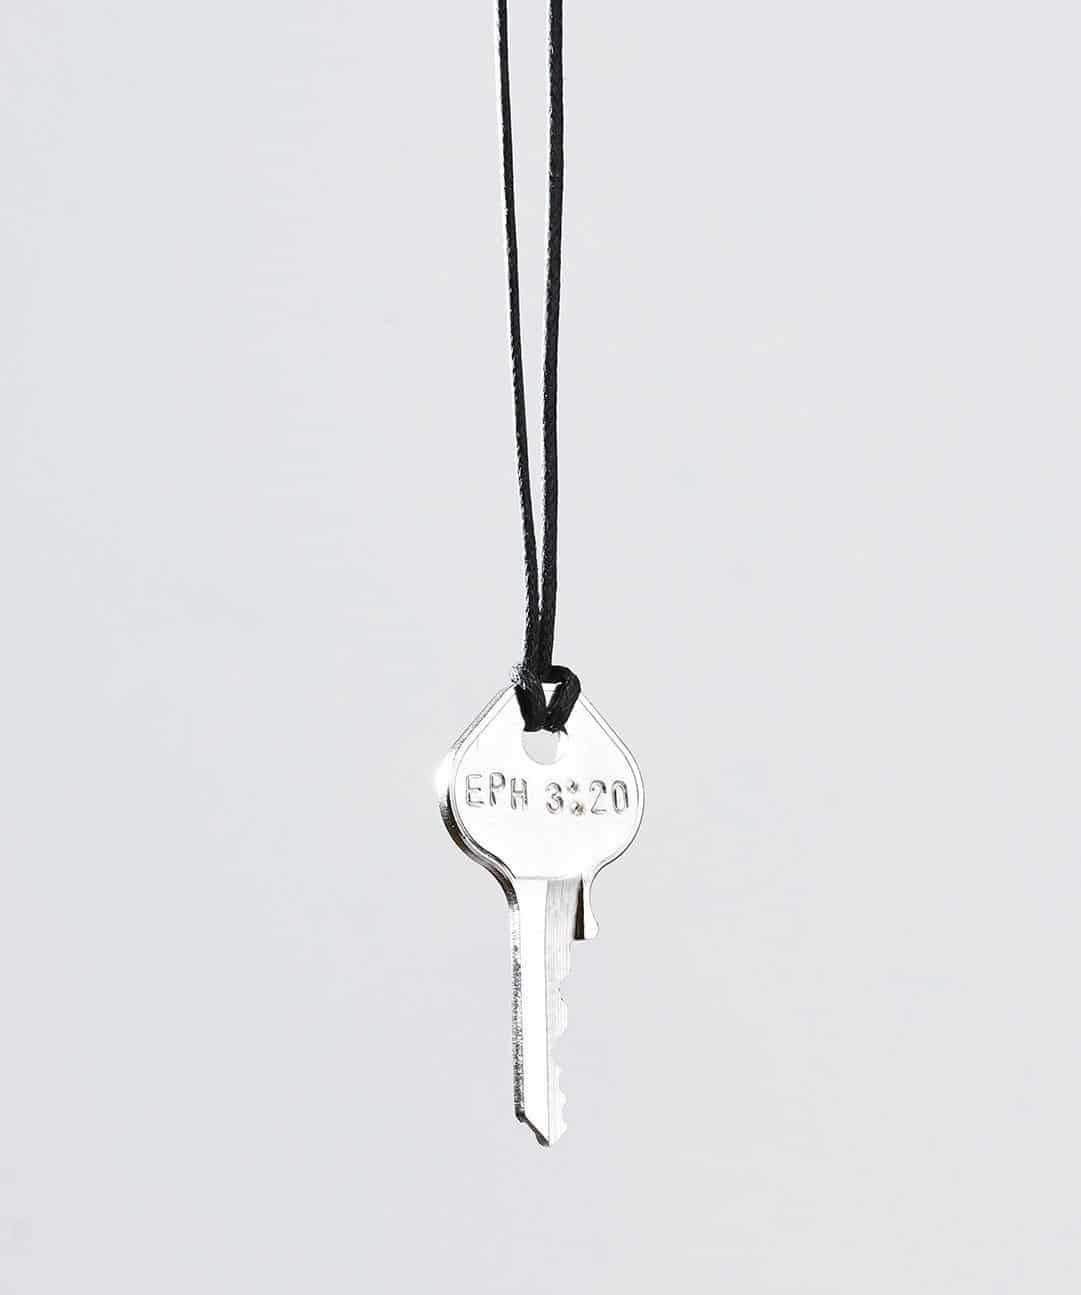 Scripture Classic Key Cord Necklace Necklaces The Giving Keys Eph 3:20 Black